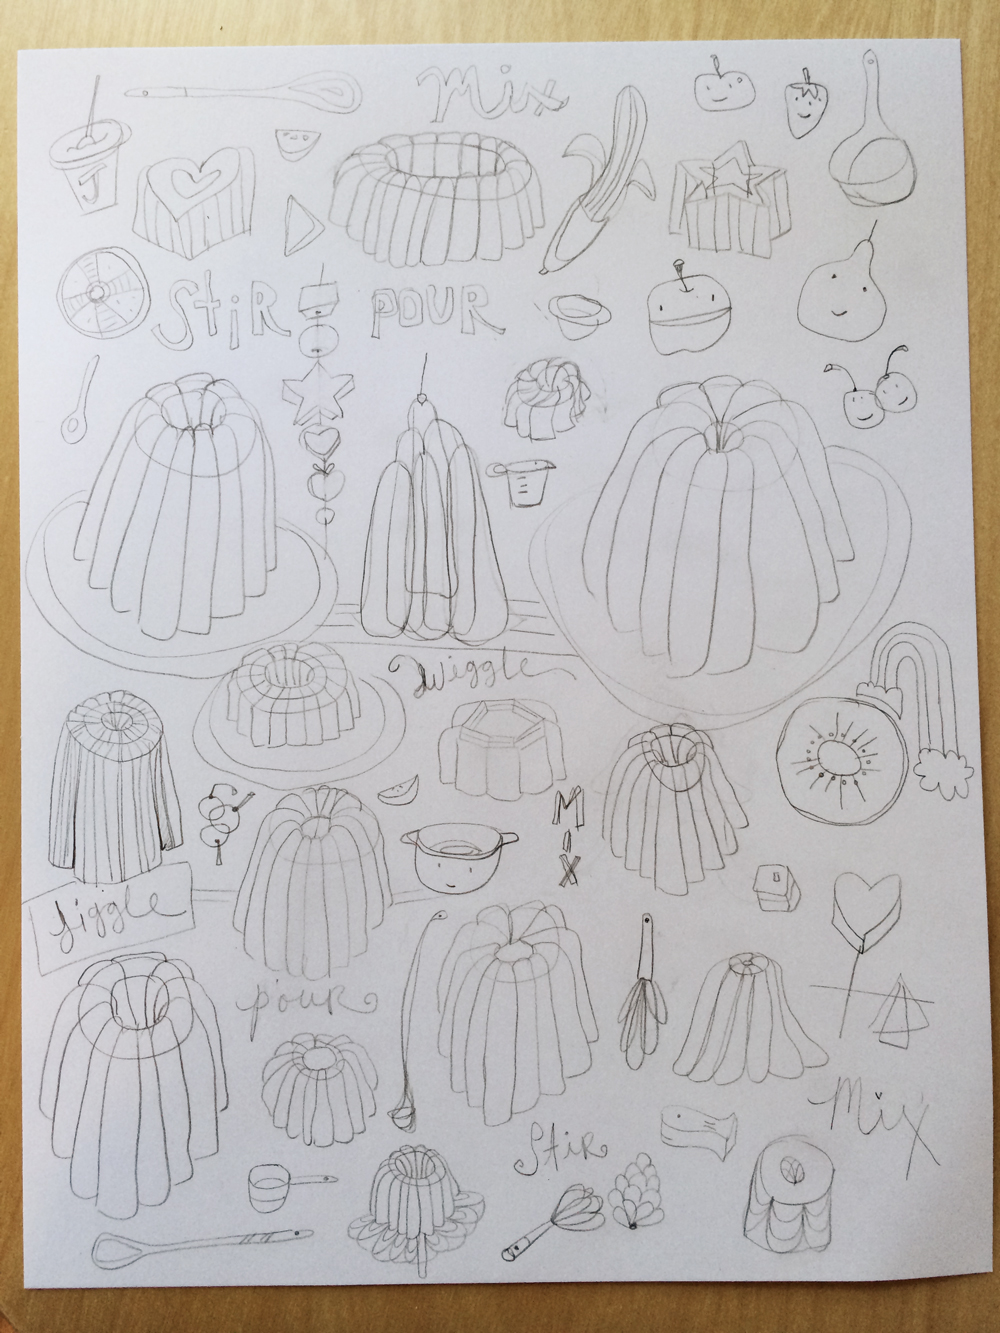 pencil sketches for Making Art that Sells Bootcamp - March 2014 - Jello - by Barb Chotiner